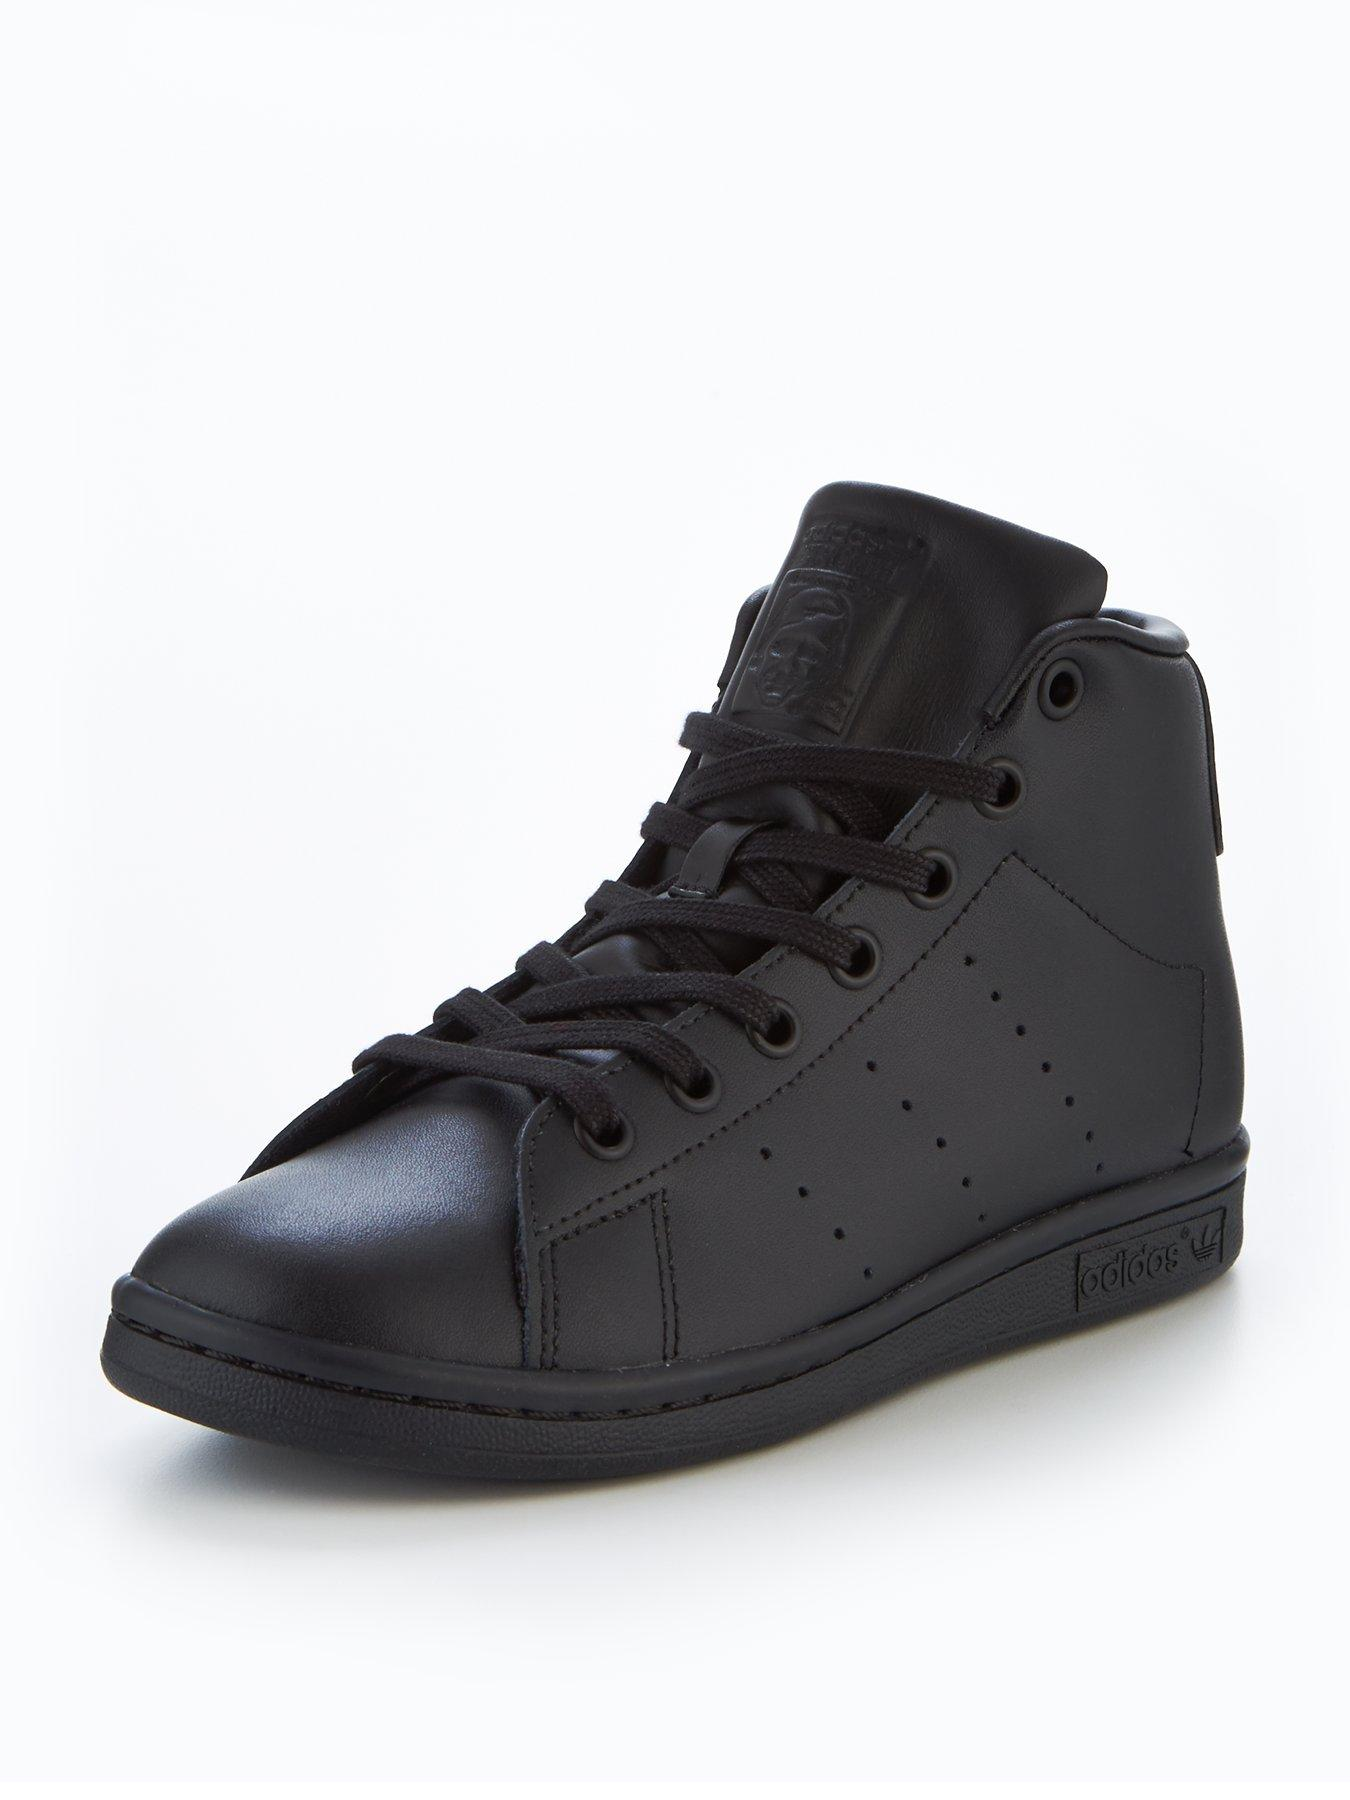 adidas originals indoor tennis mid junior - adidas originals nizza ... d15a9133be5